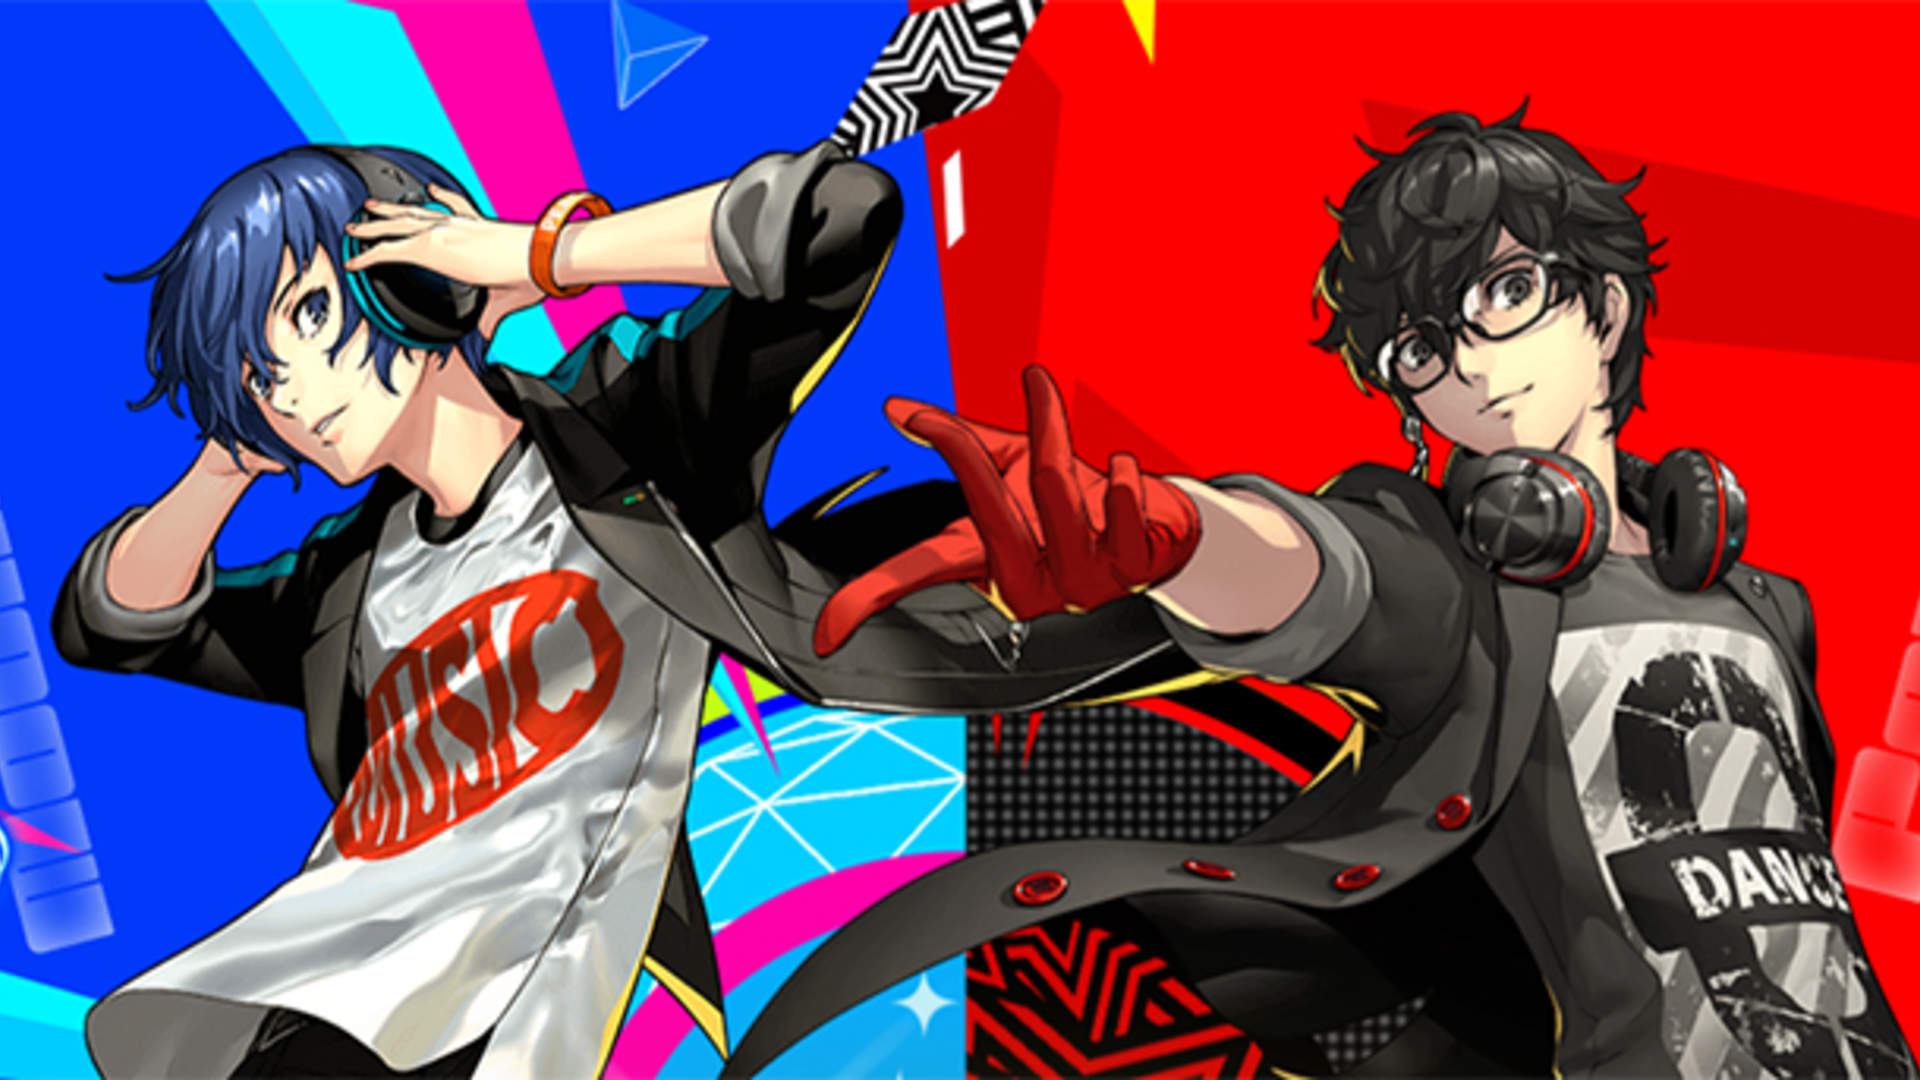 Persona 5 Strikers Teaser Promises a December 8, 2020 Reveal